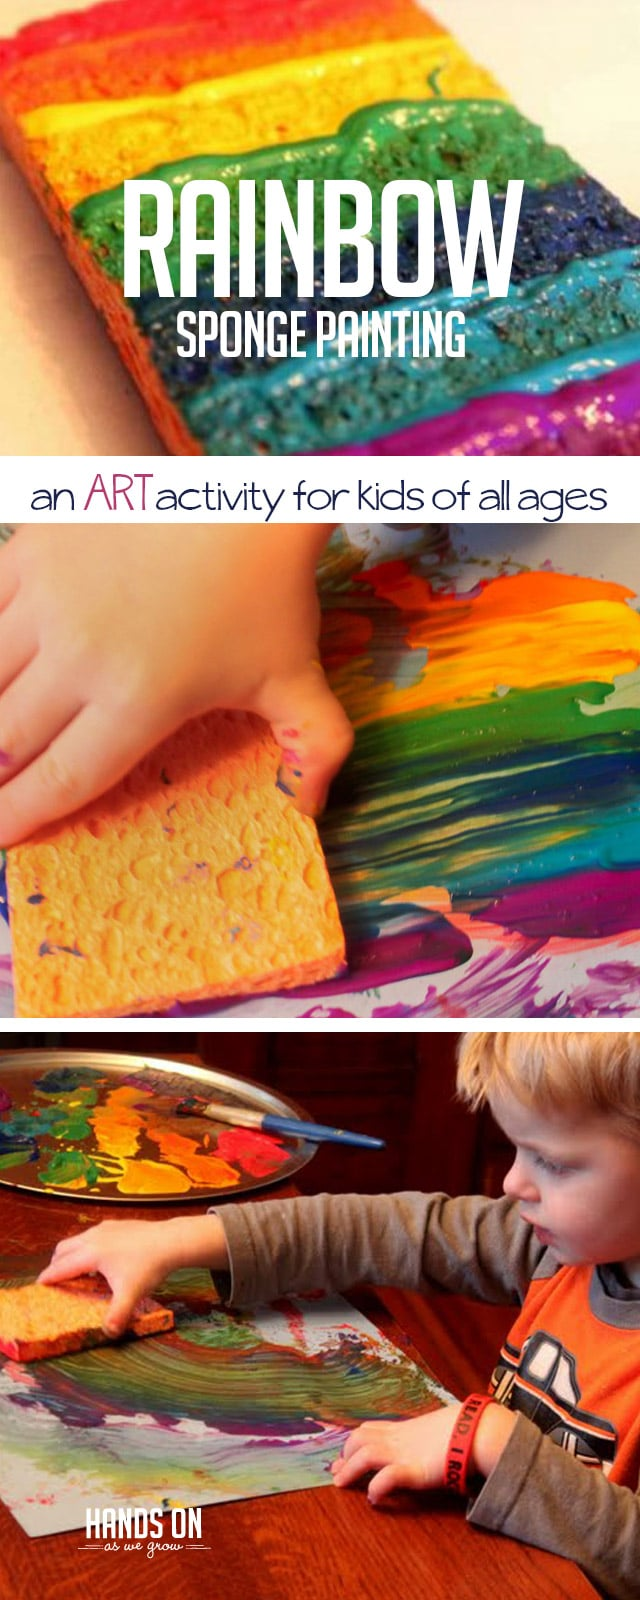 Use a cool tool to create colorful paintings! Rainbow sponge painting is a cool and super easy art activity for everyone.